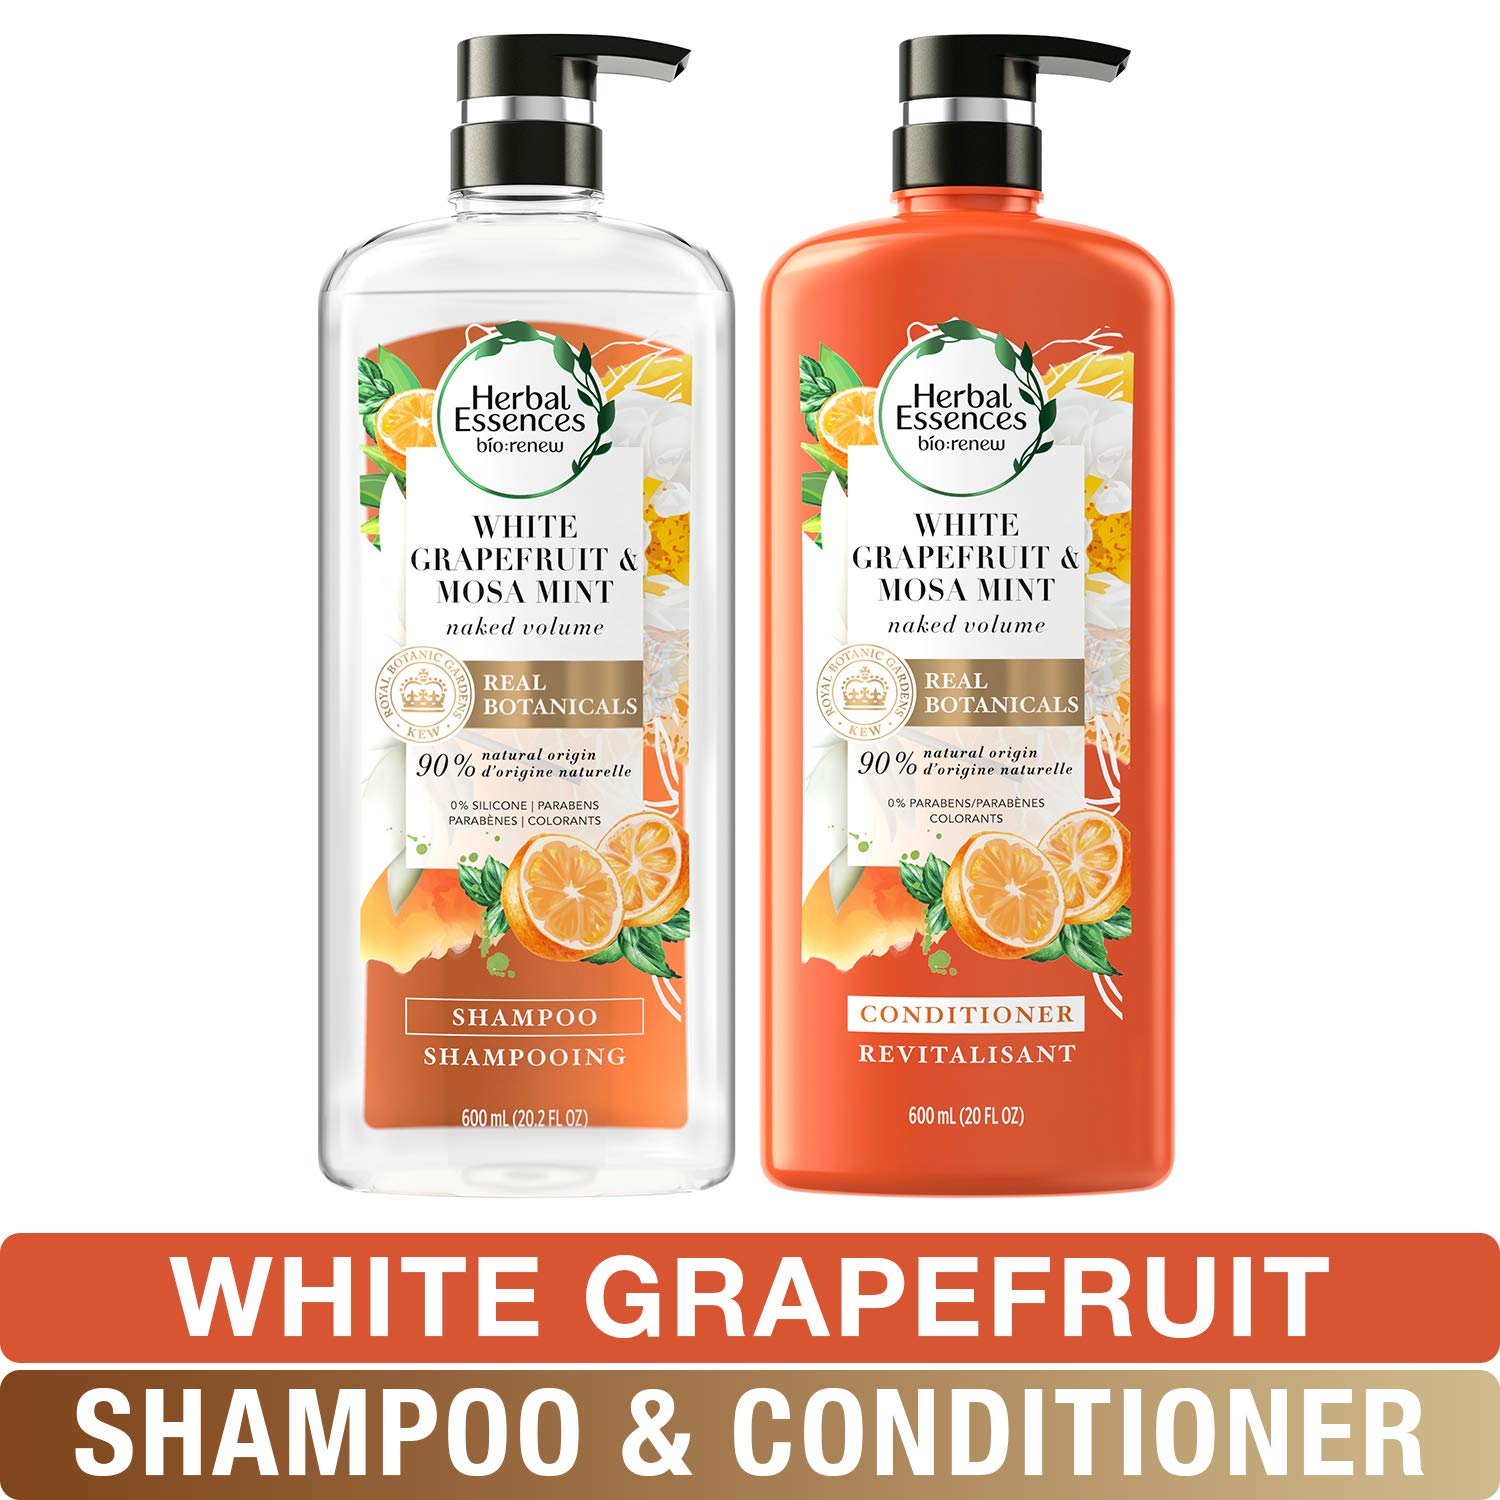 Herbal Essences, Volume Shampoo & Conditioner Kit with Natural Source Ingredients, For Fine Hair, Color Safe, Bio Renew White Grapefruit & Mosa Mint Naked Volume, 20.2 fl oz, Kit